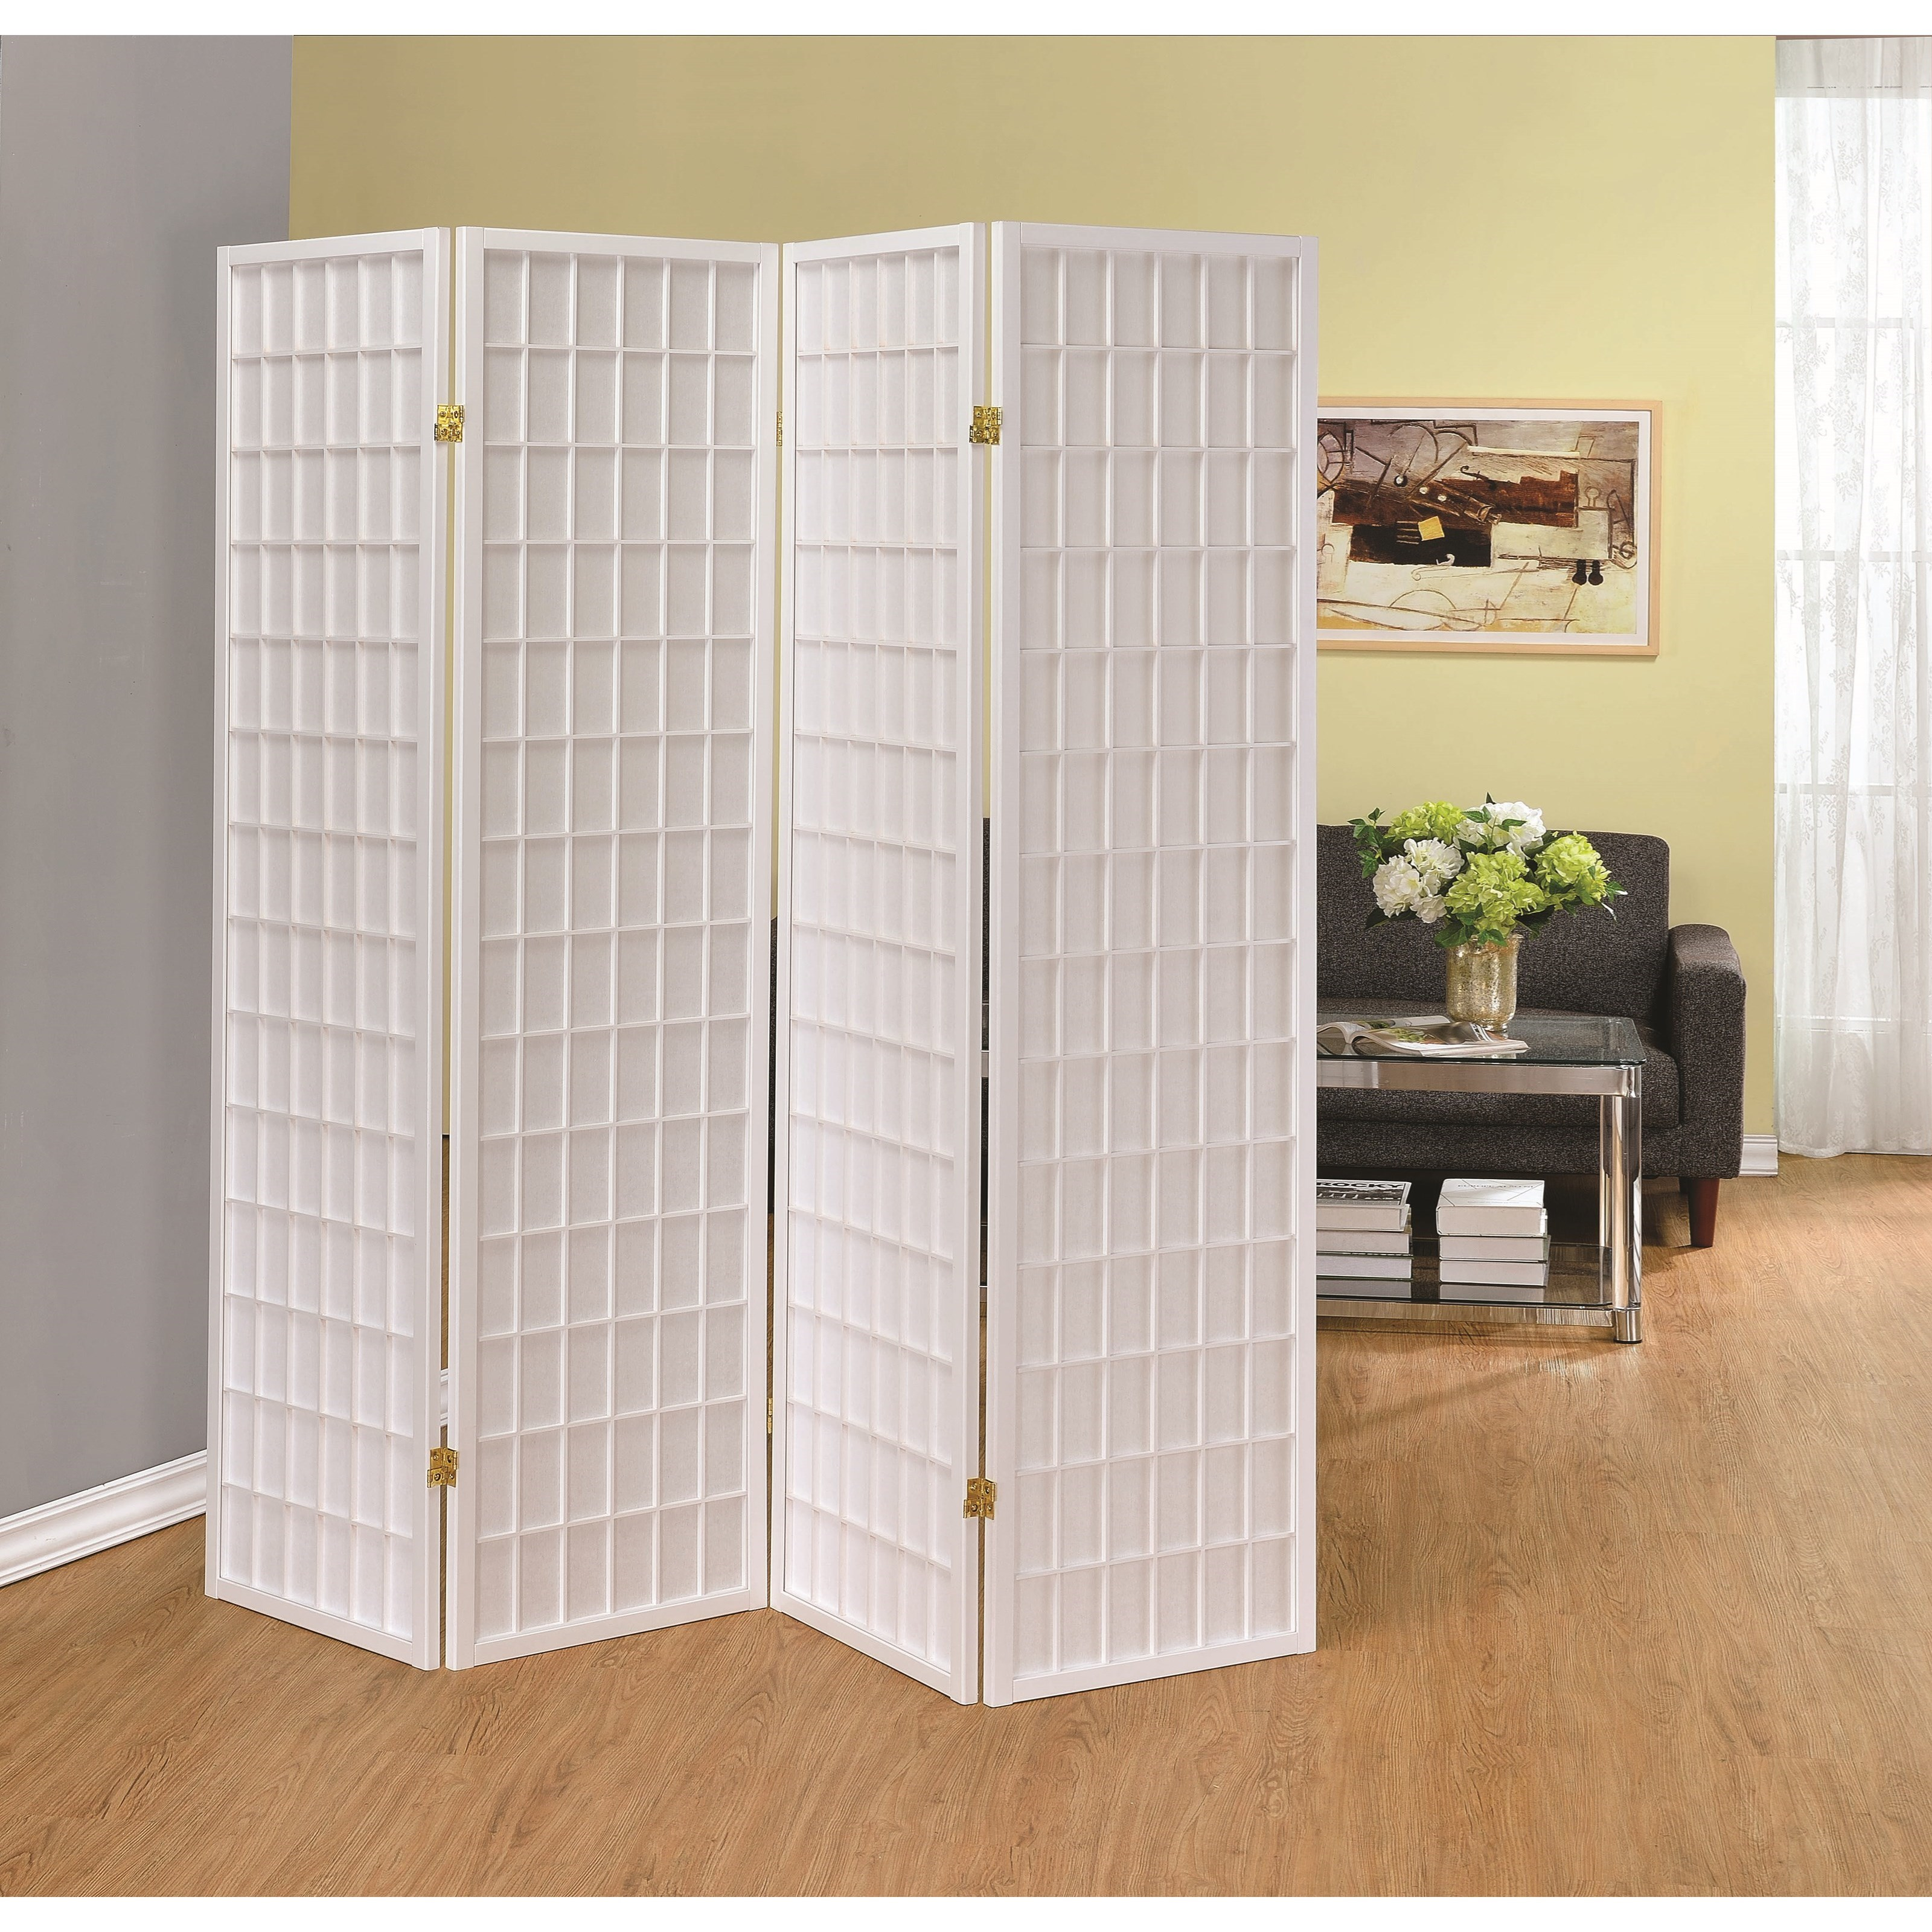 Coaster folding screens 902626 four panel white folding for Divider screens for rooms